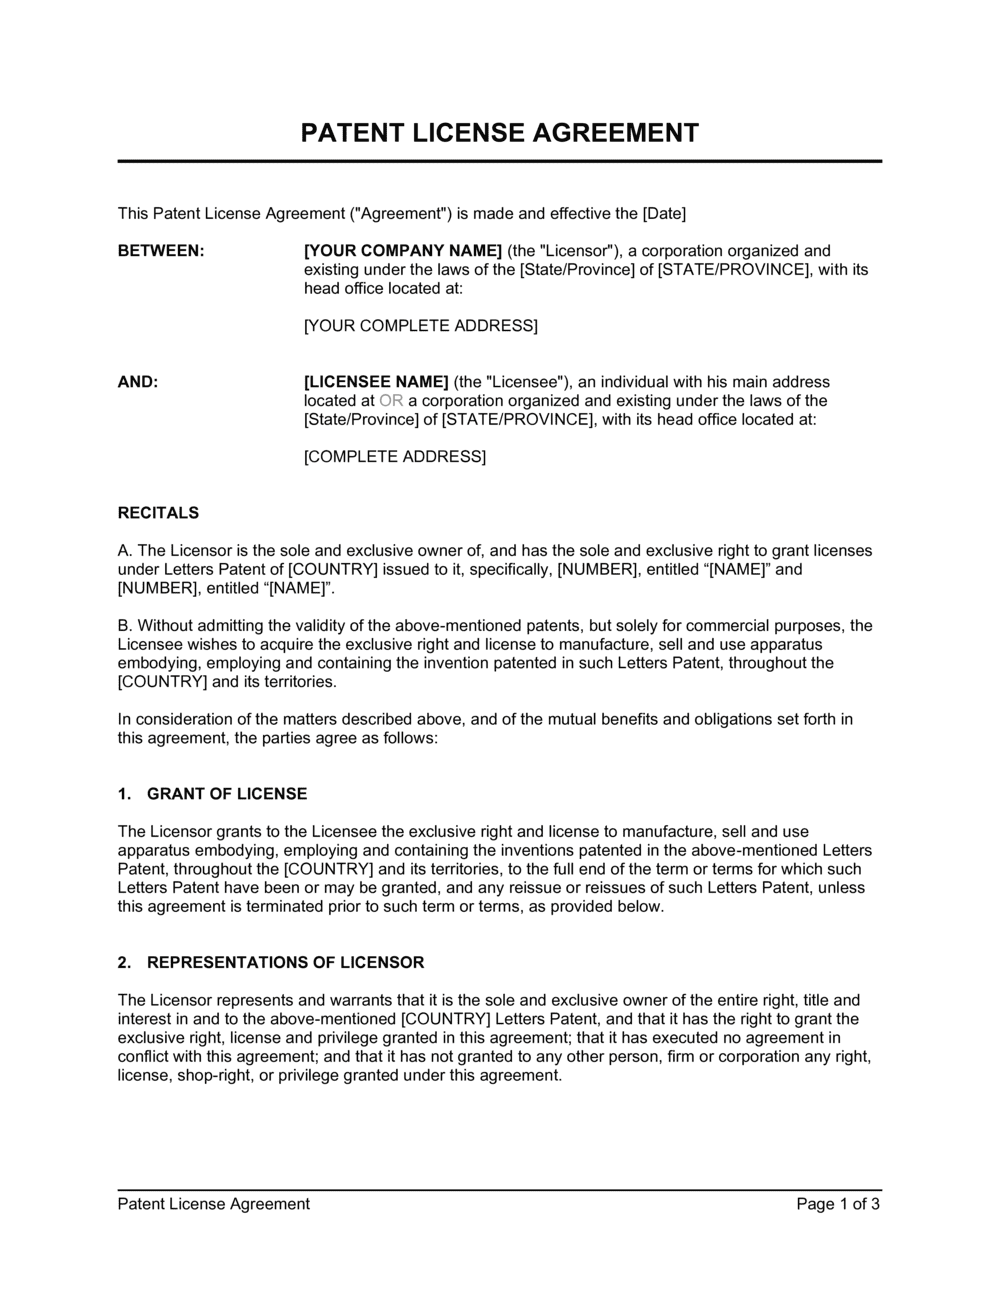 Business-in-a-Box's Patent License Agreement Template